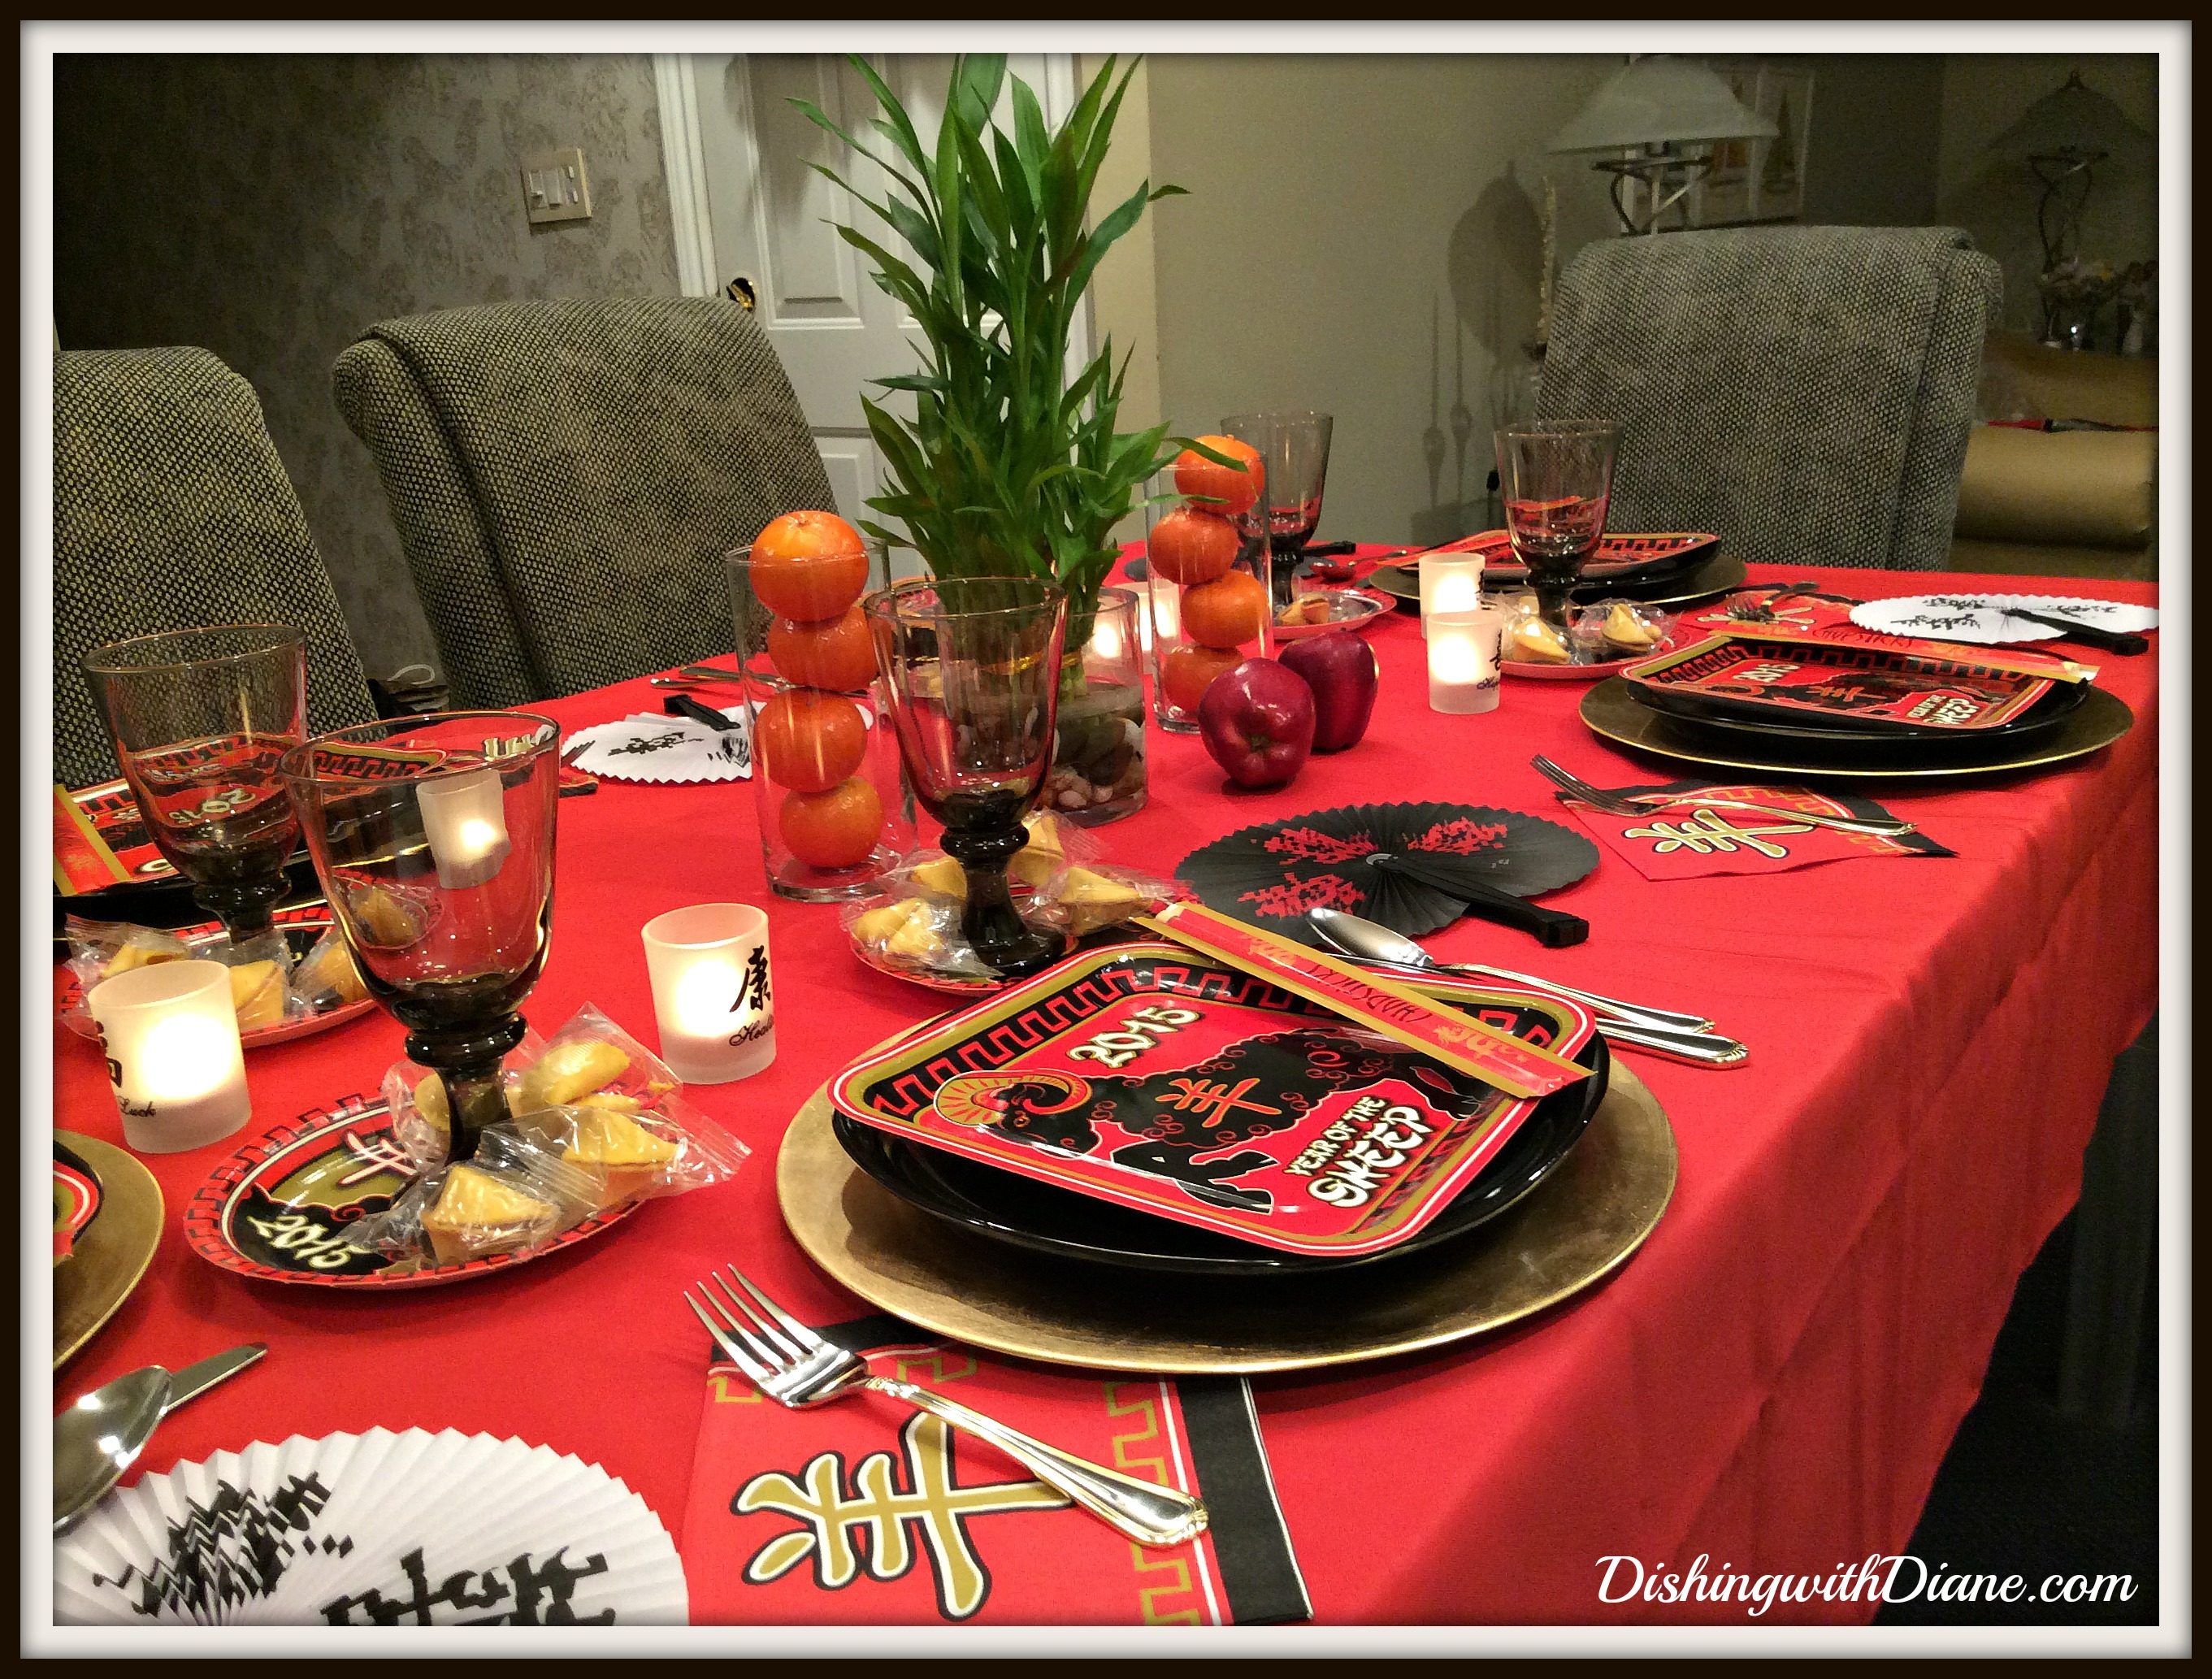 2015-02-17 23.50.46- INTRO 2 & Chinese New Year   Dishing With Diane